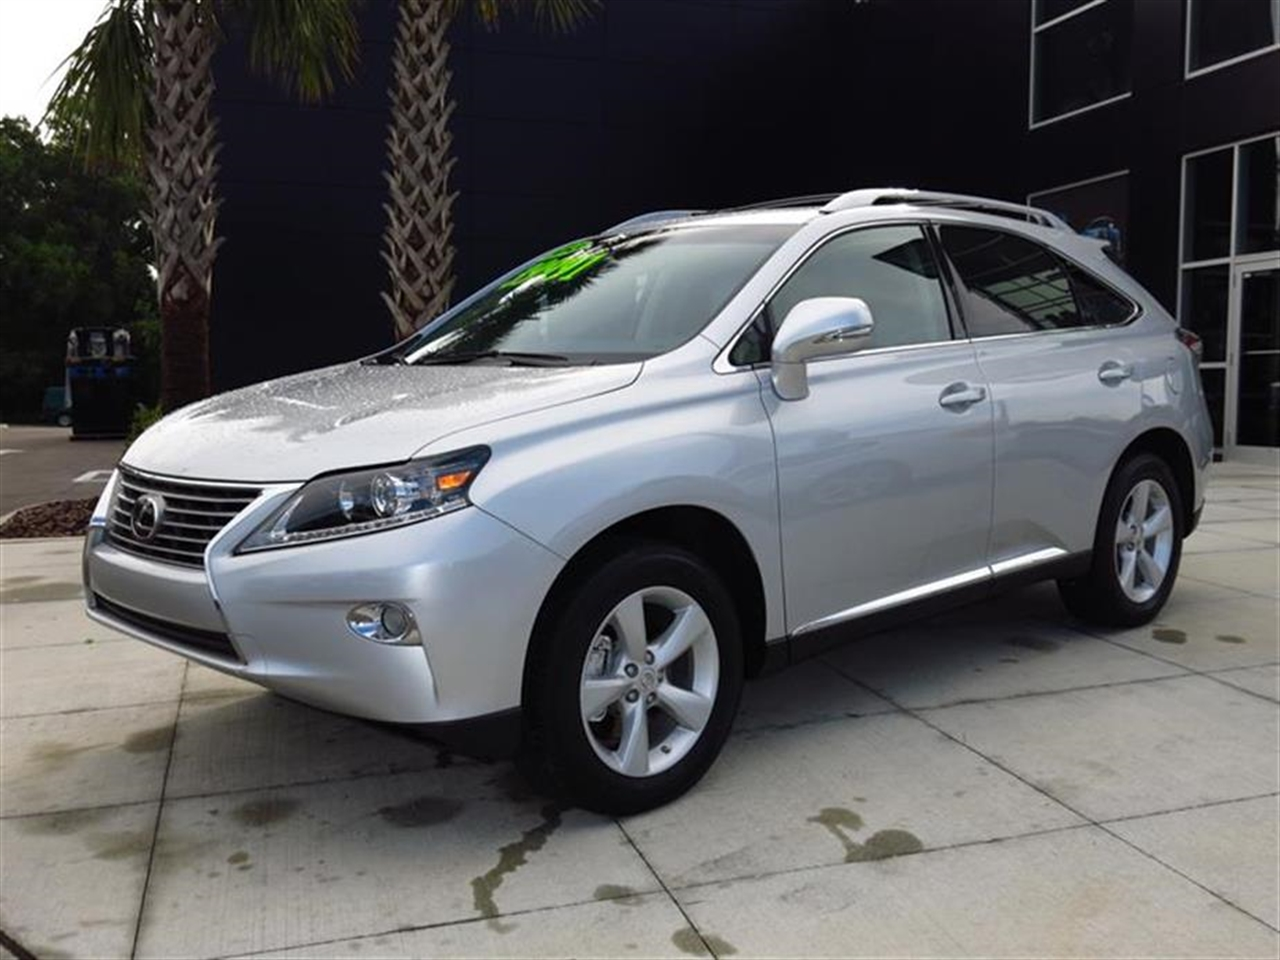 2013 LEXUS RX 350 FWD 4dr 11684 miles 10-way pwr front bucket seats -inc pwr lumbar adjustable h